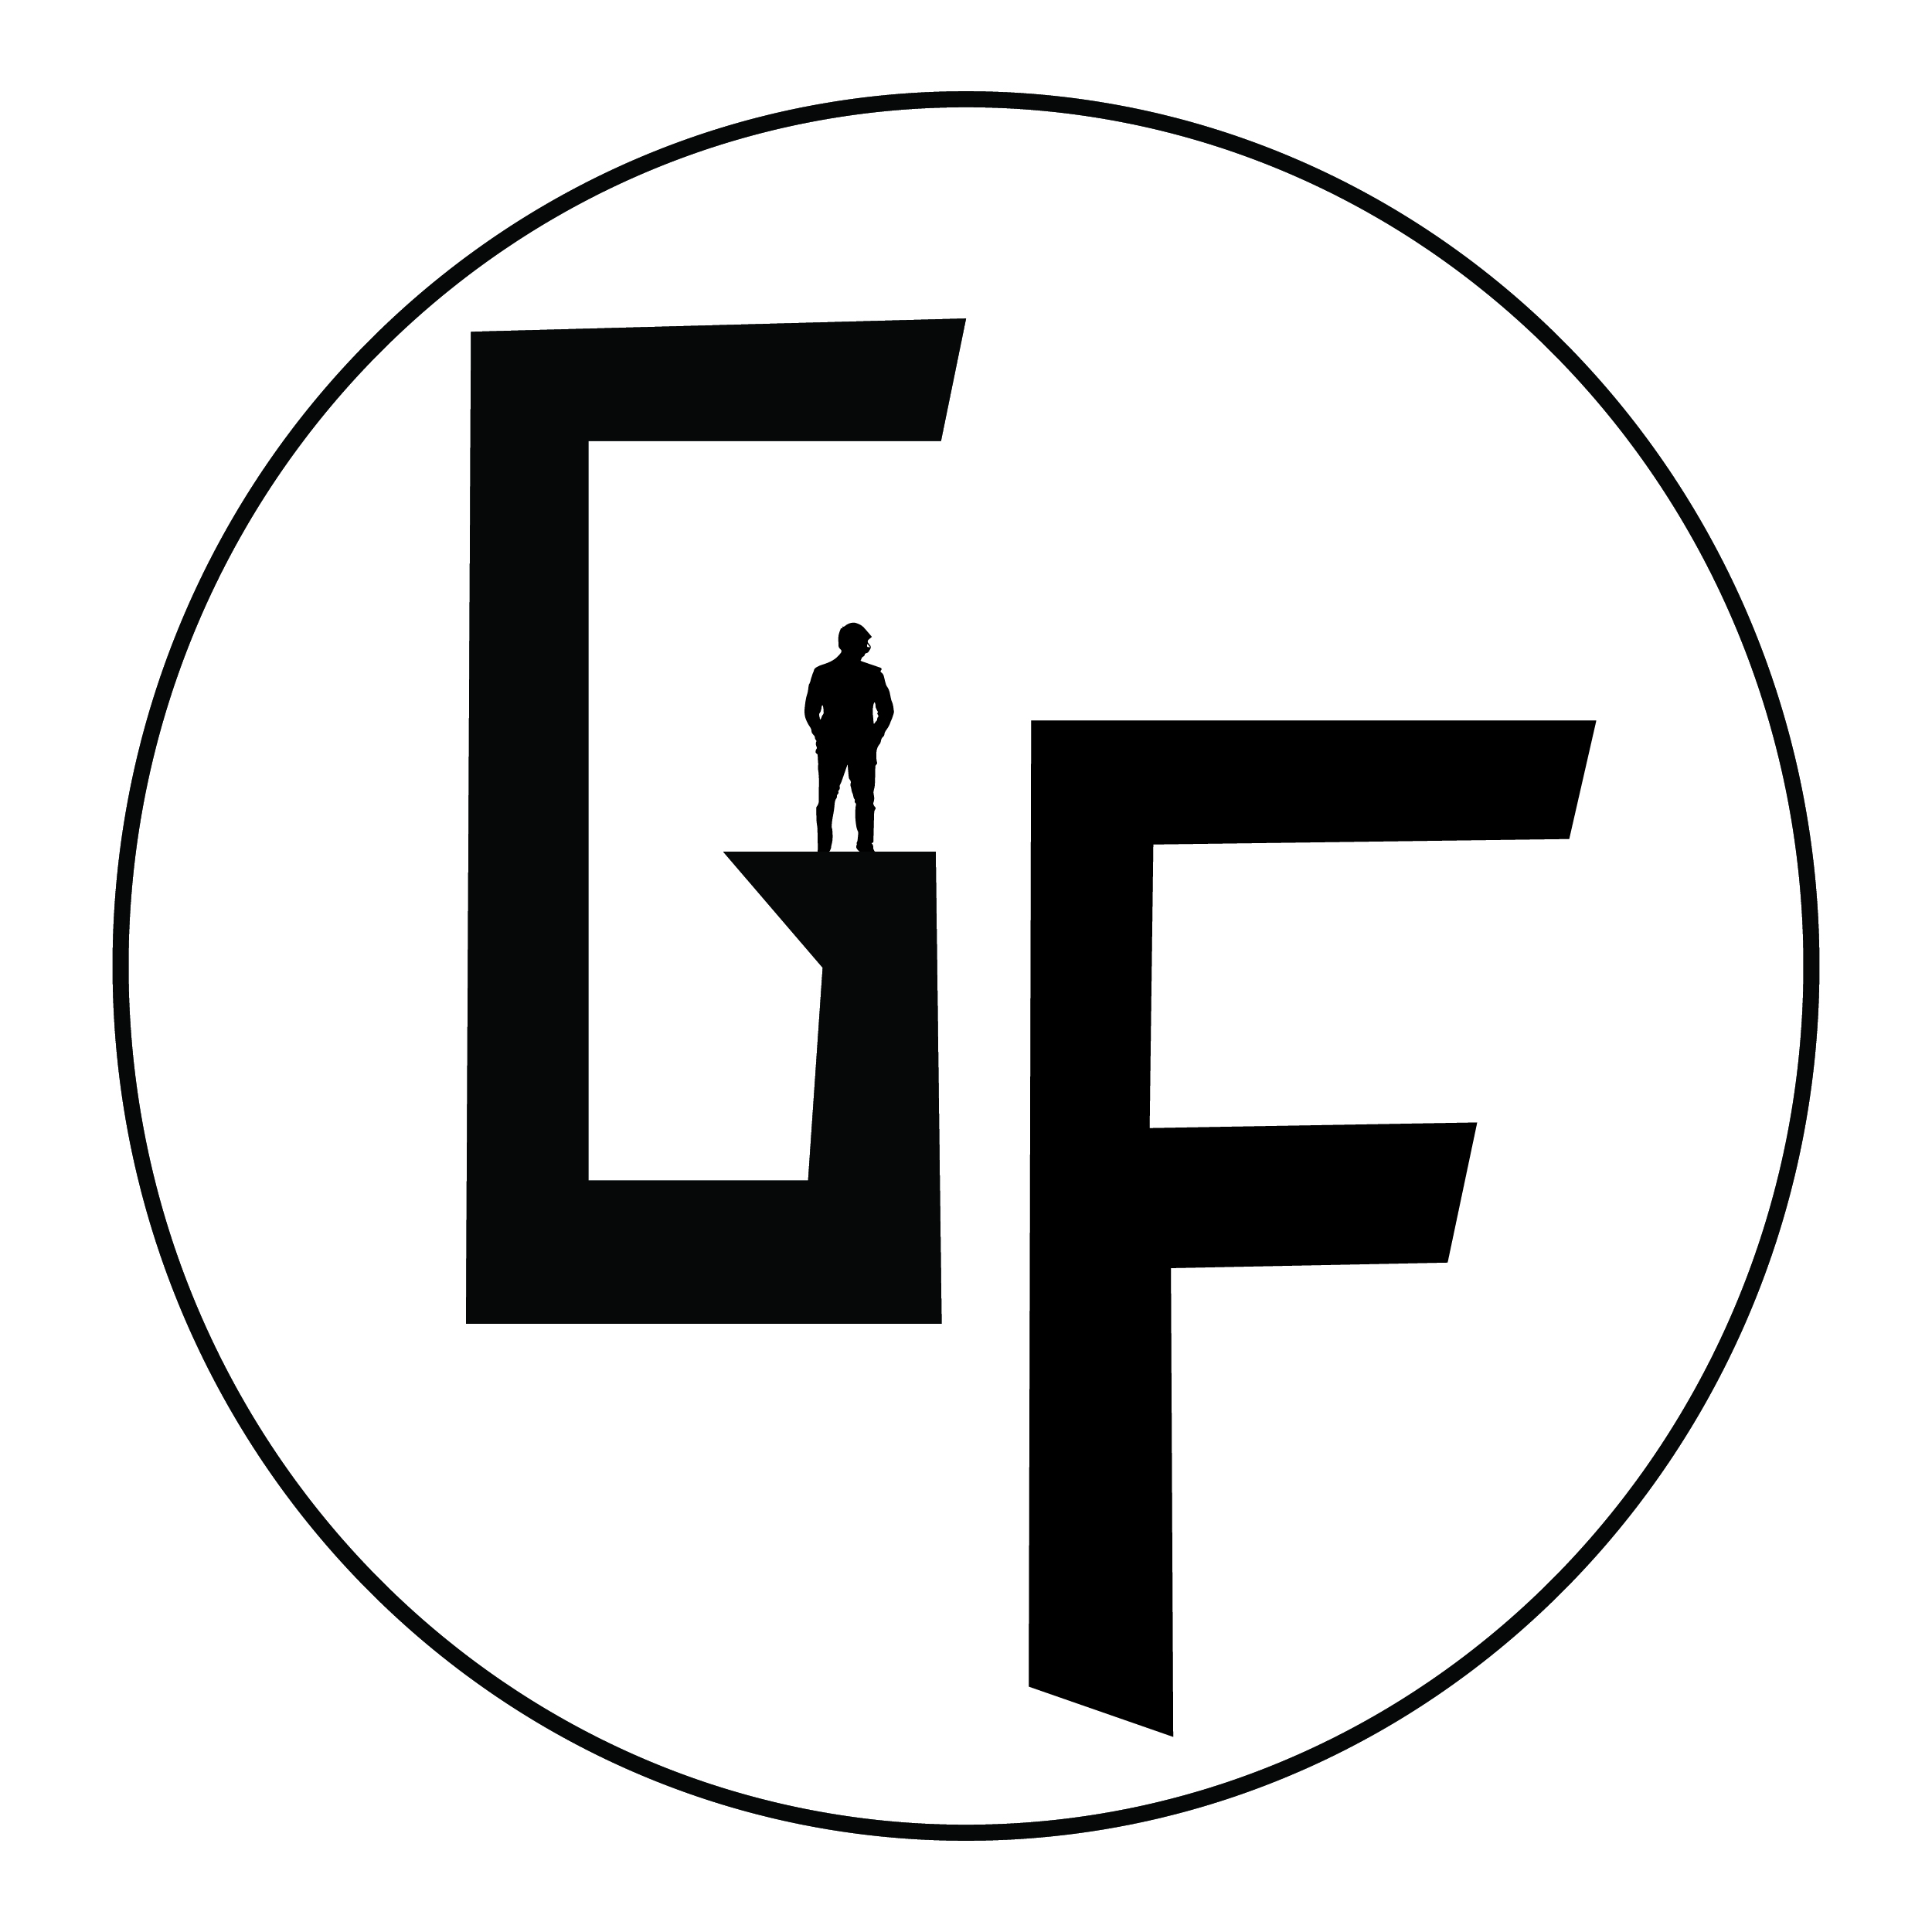 Giovanni Fortini logo. Black G and F letters in a circle with a human silhouette.